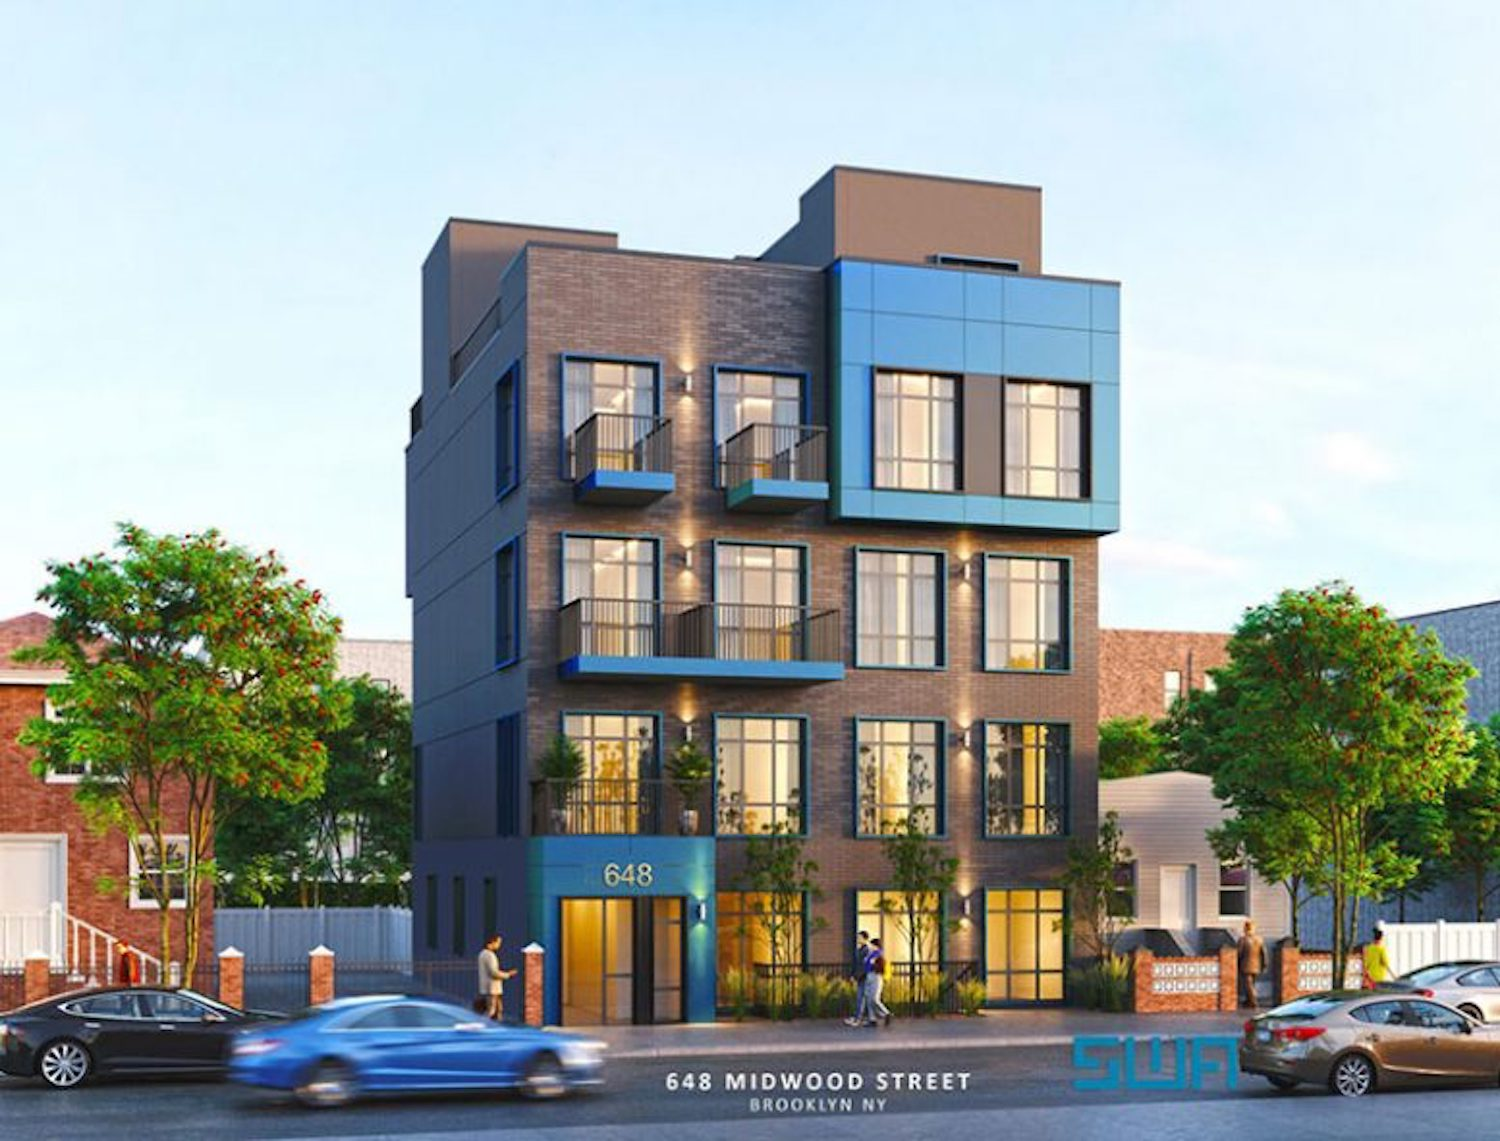 648 Midwood Street Apartments in Wingate, Brooklyn